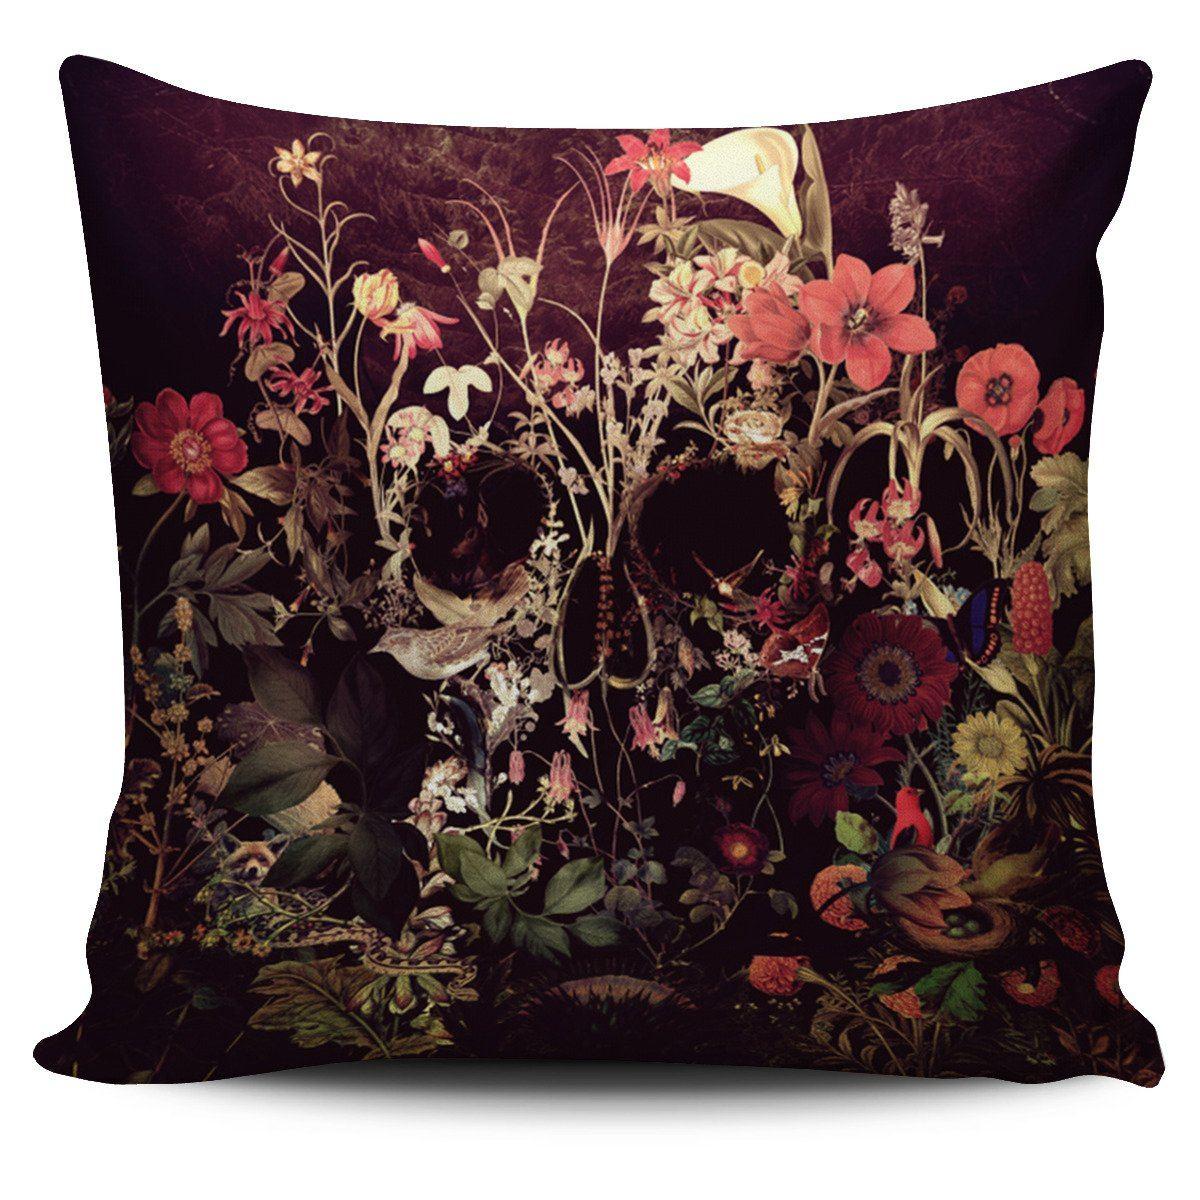 Blooming Skull Pillow Cover